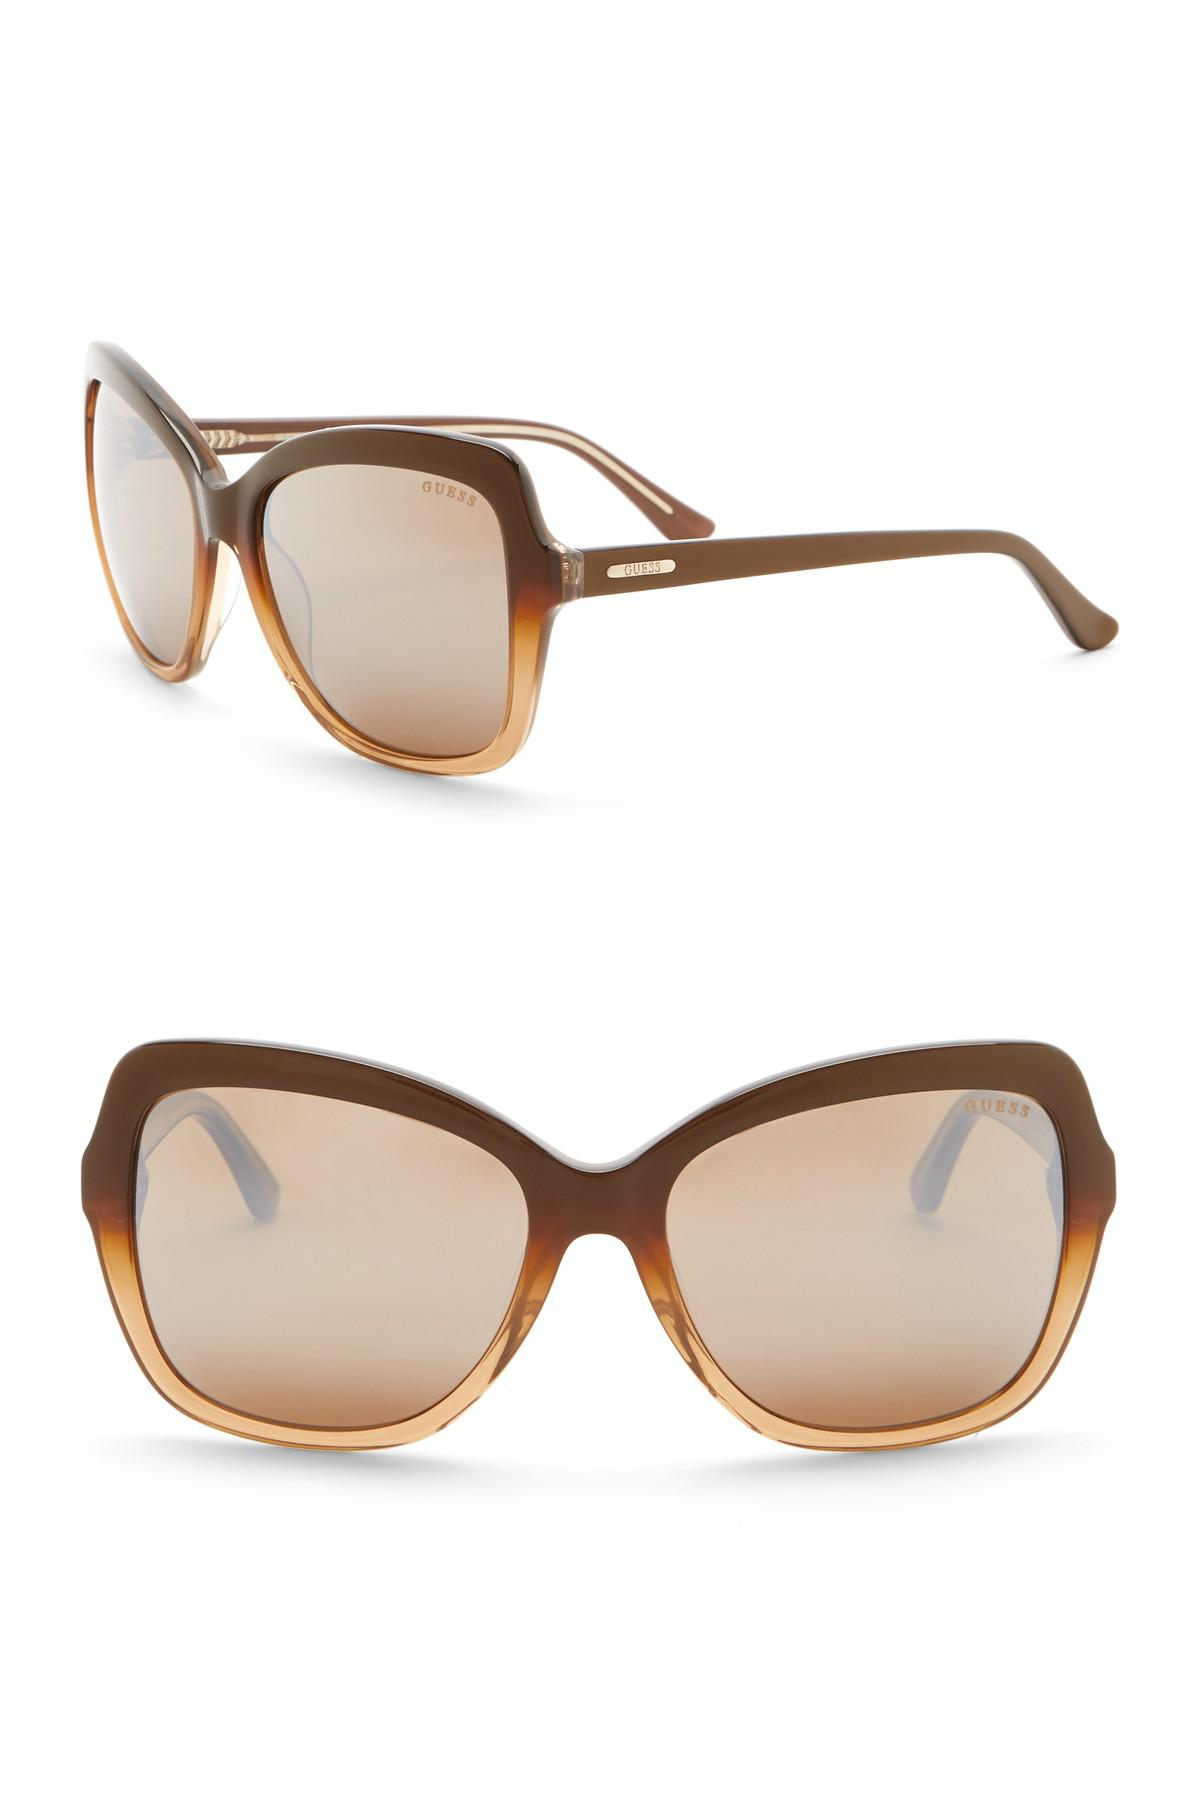 422479765a3 Gallery. Previously sold at  Nordstrom Rack · Women s Celine Shadow Women s Tom  Ford Campbell Women s Tinted Sunglasses ...